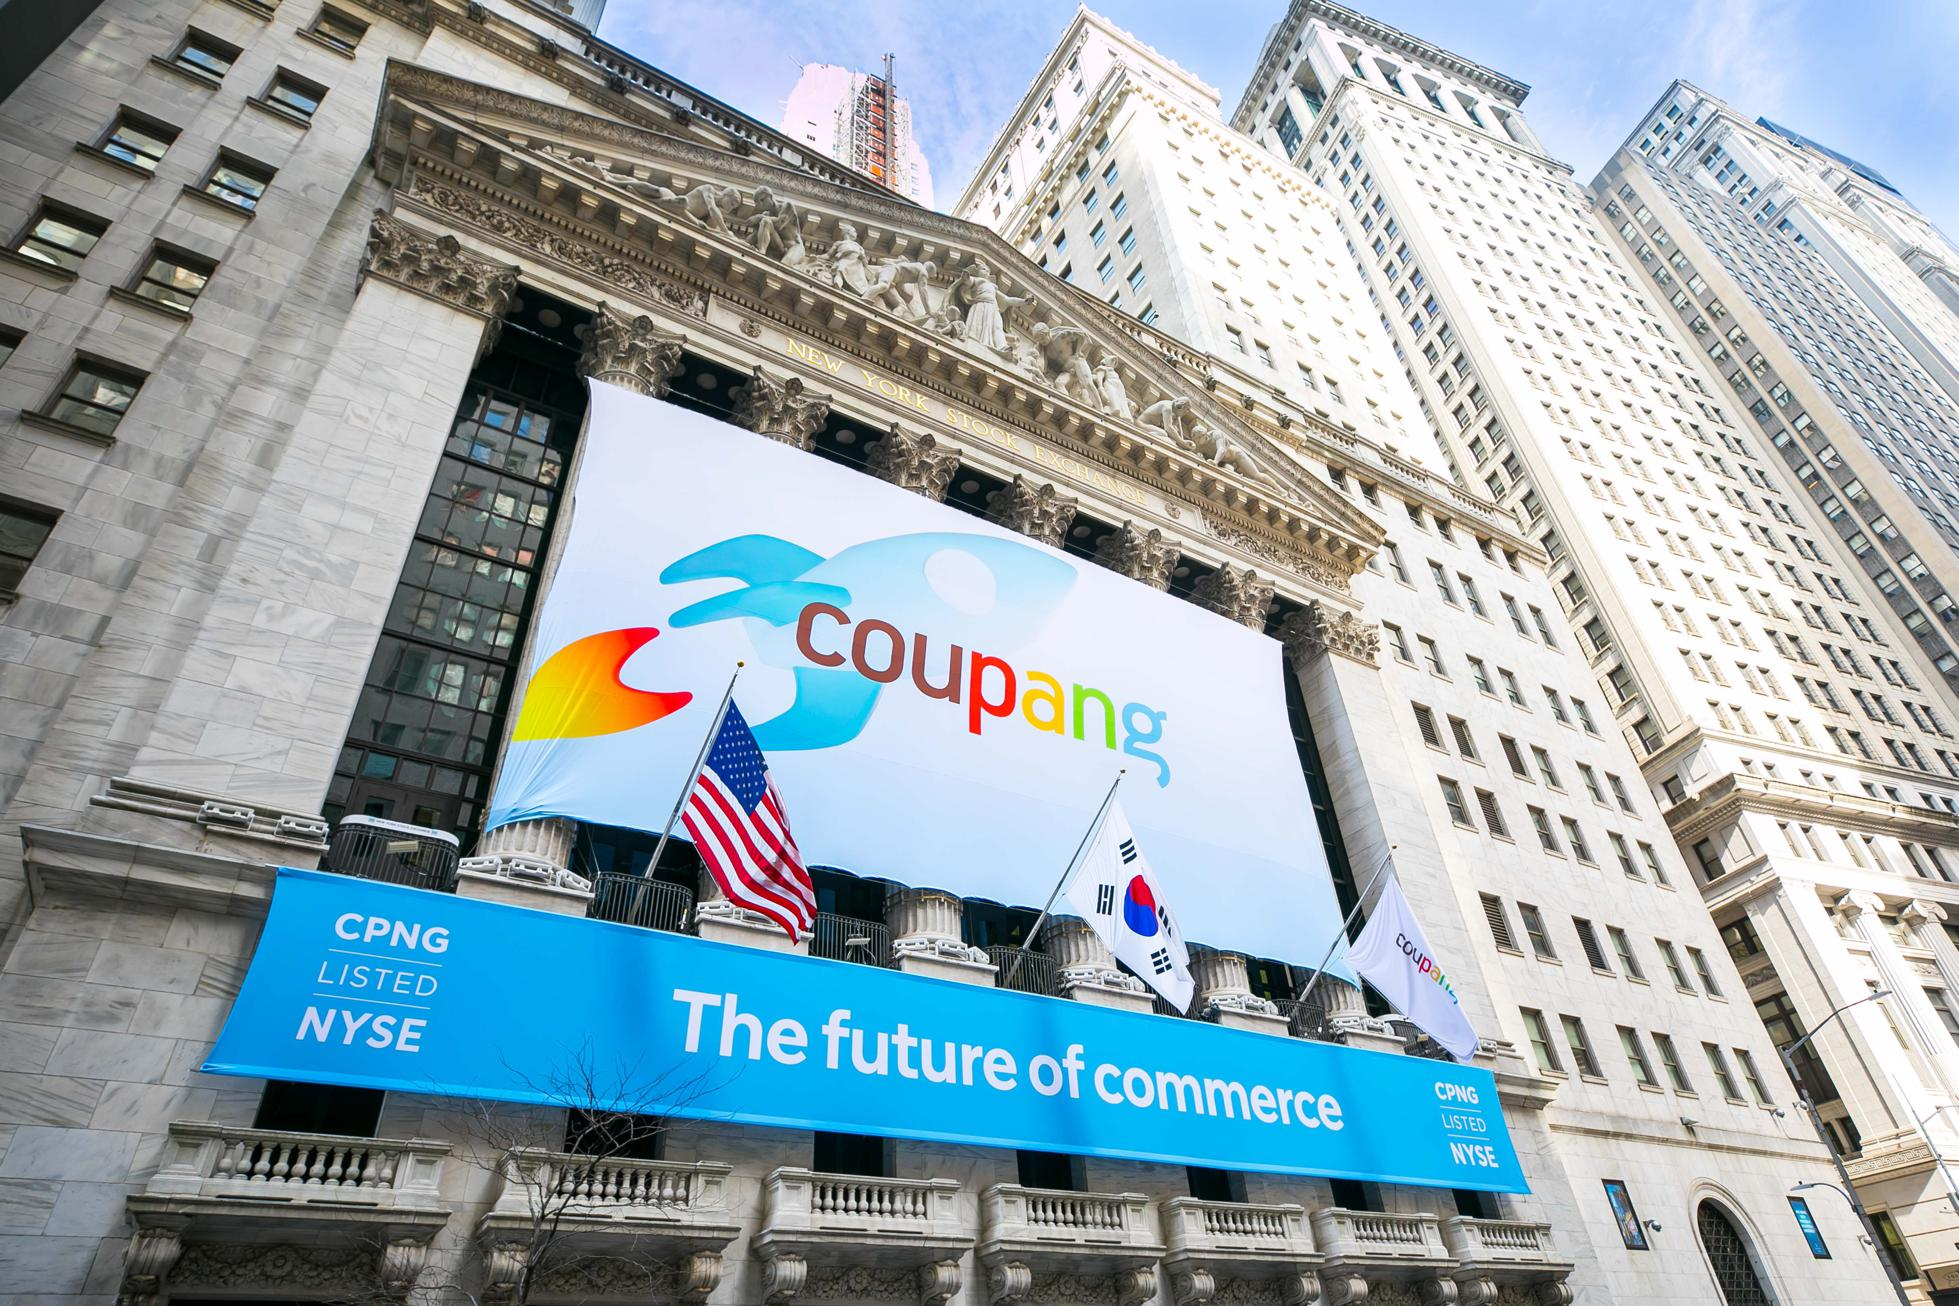 South Korea's e-commerce giant Coupang went public on the New York Stock Exchange.